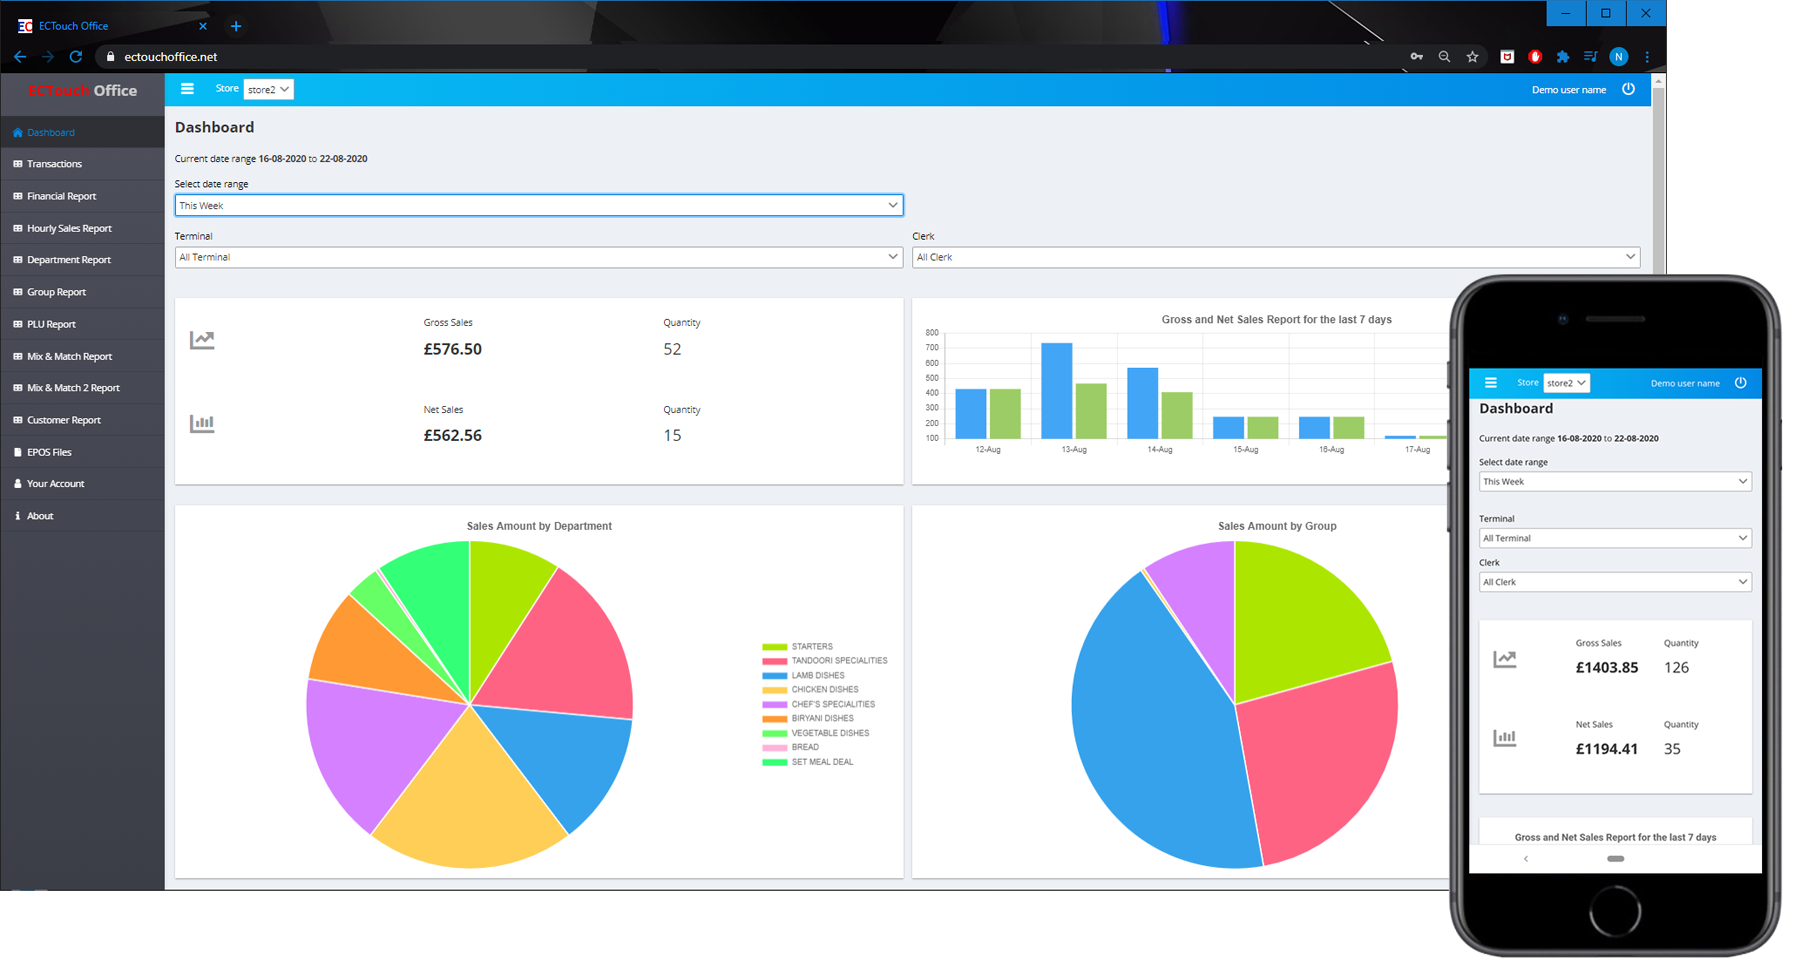 ECTouch_Office_Dashboard